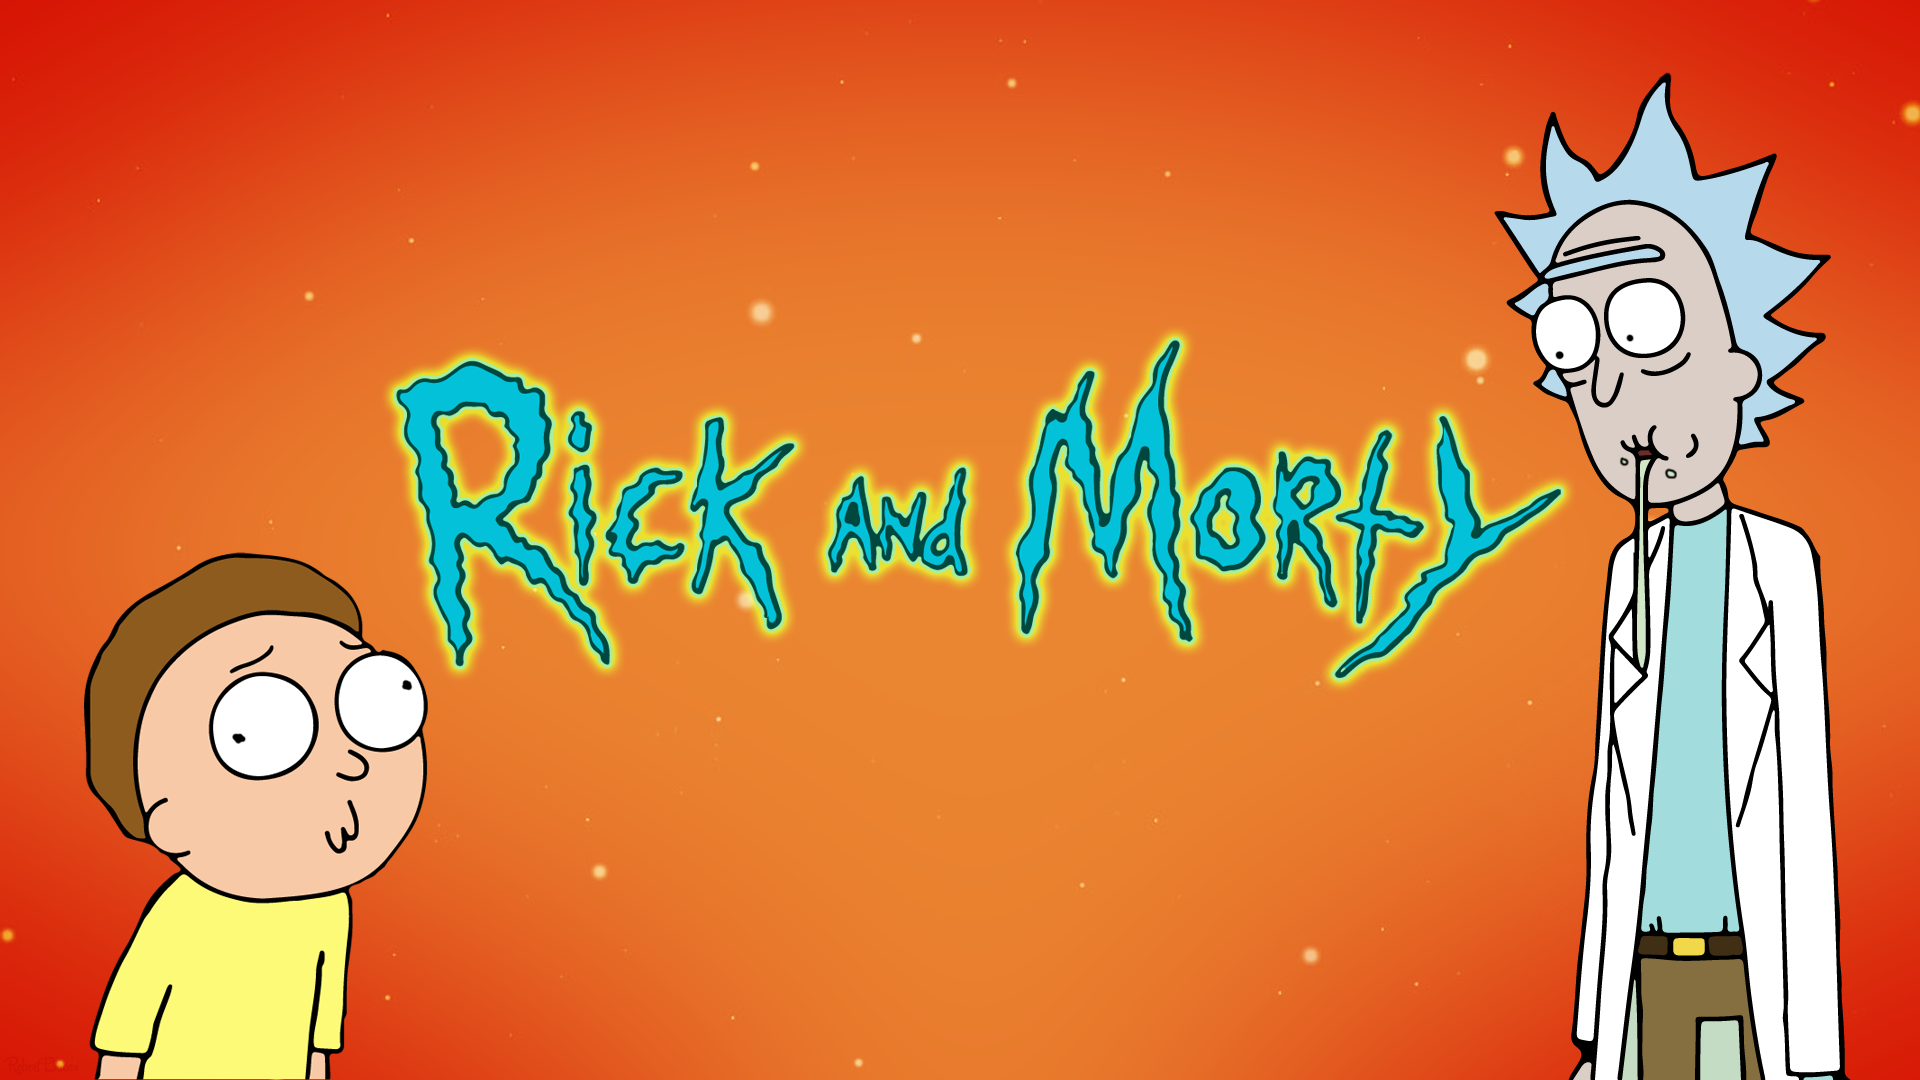 Rick And Morty Cover 1920x1080 Download Hd Wallpaper Wallpapertip